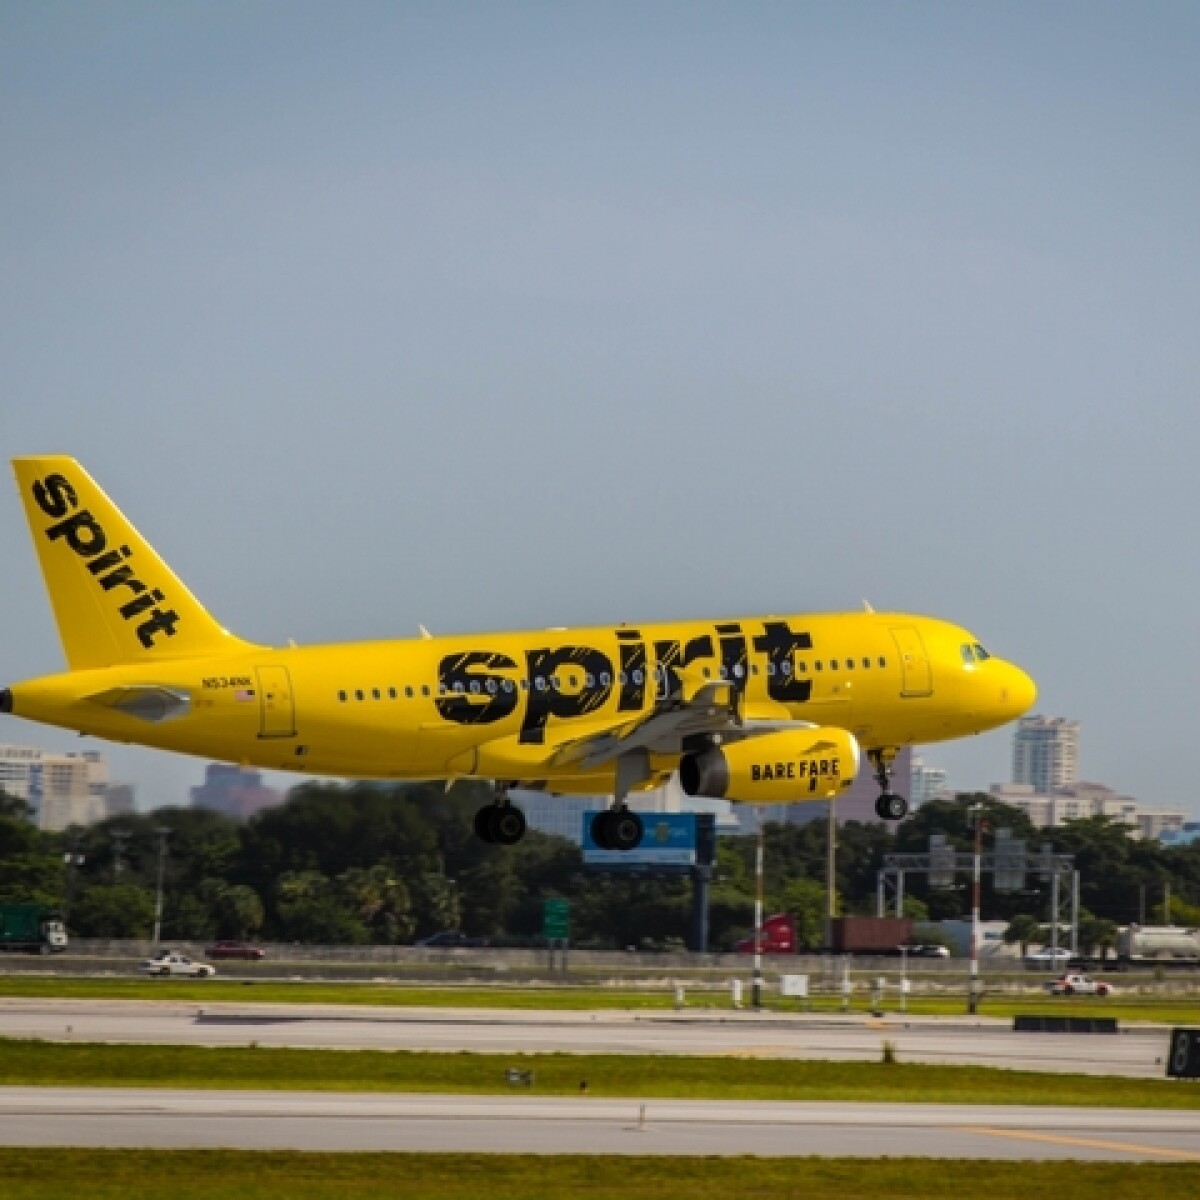 parts of spirit plane found in metro detroit yards after dtw takeoff